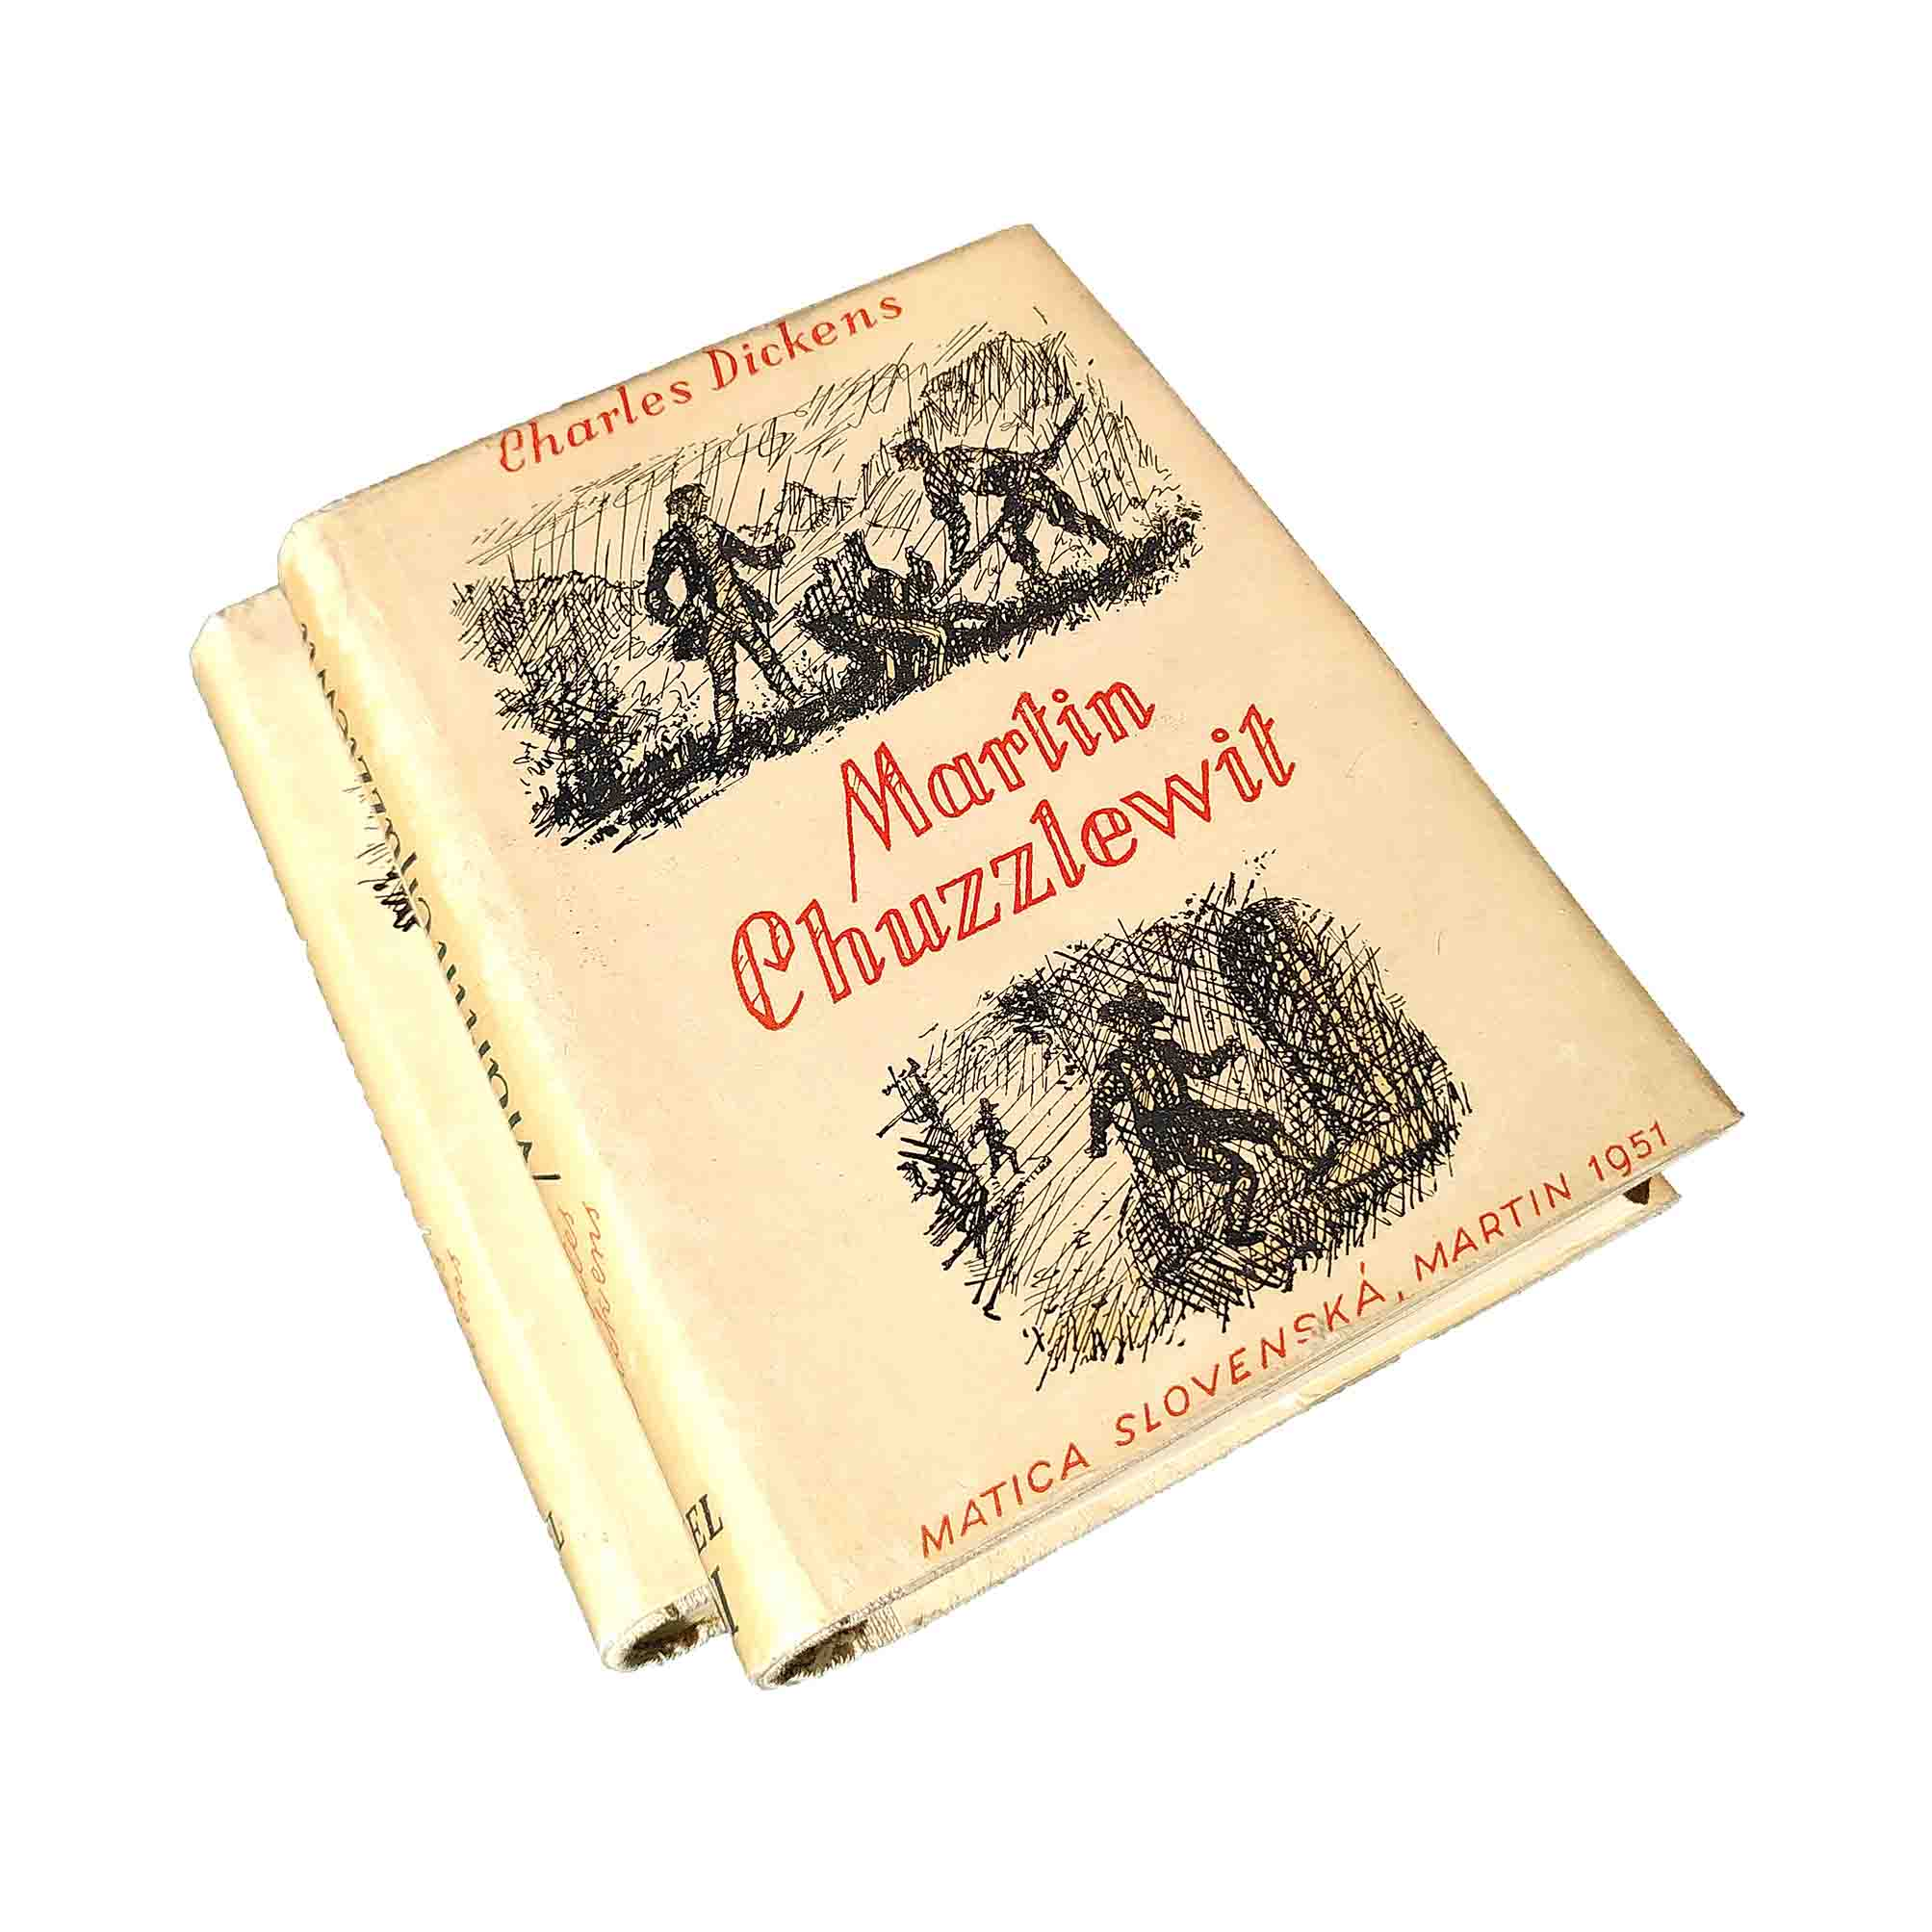 5917 Dickens Chuzzlewit Slovak First Edition 1951 Dust Jackets free N